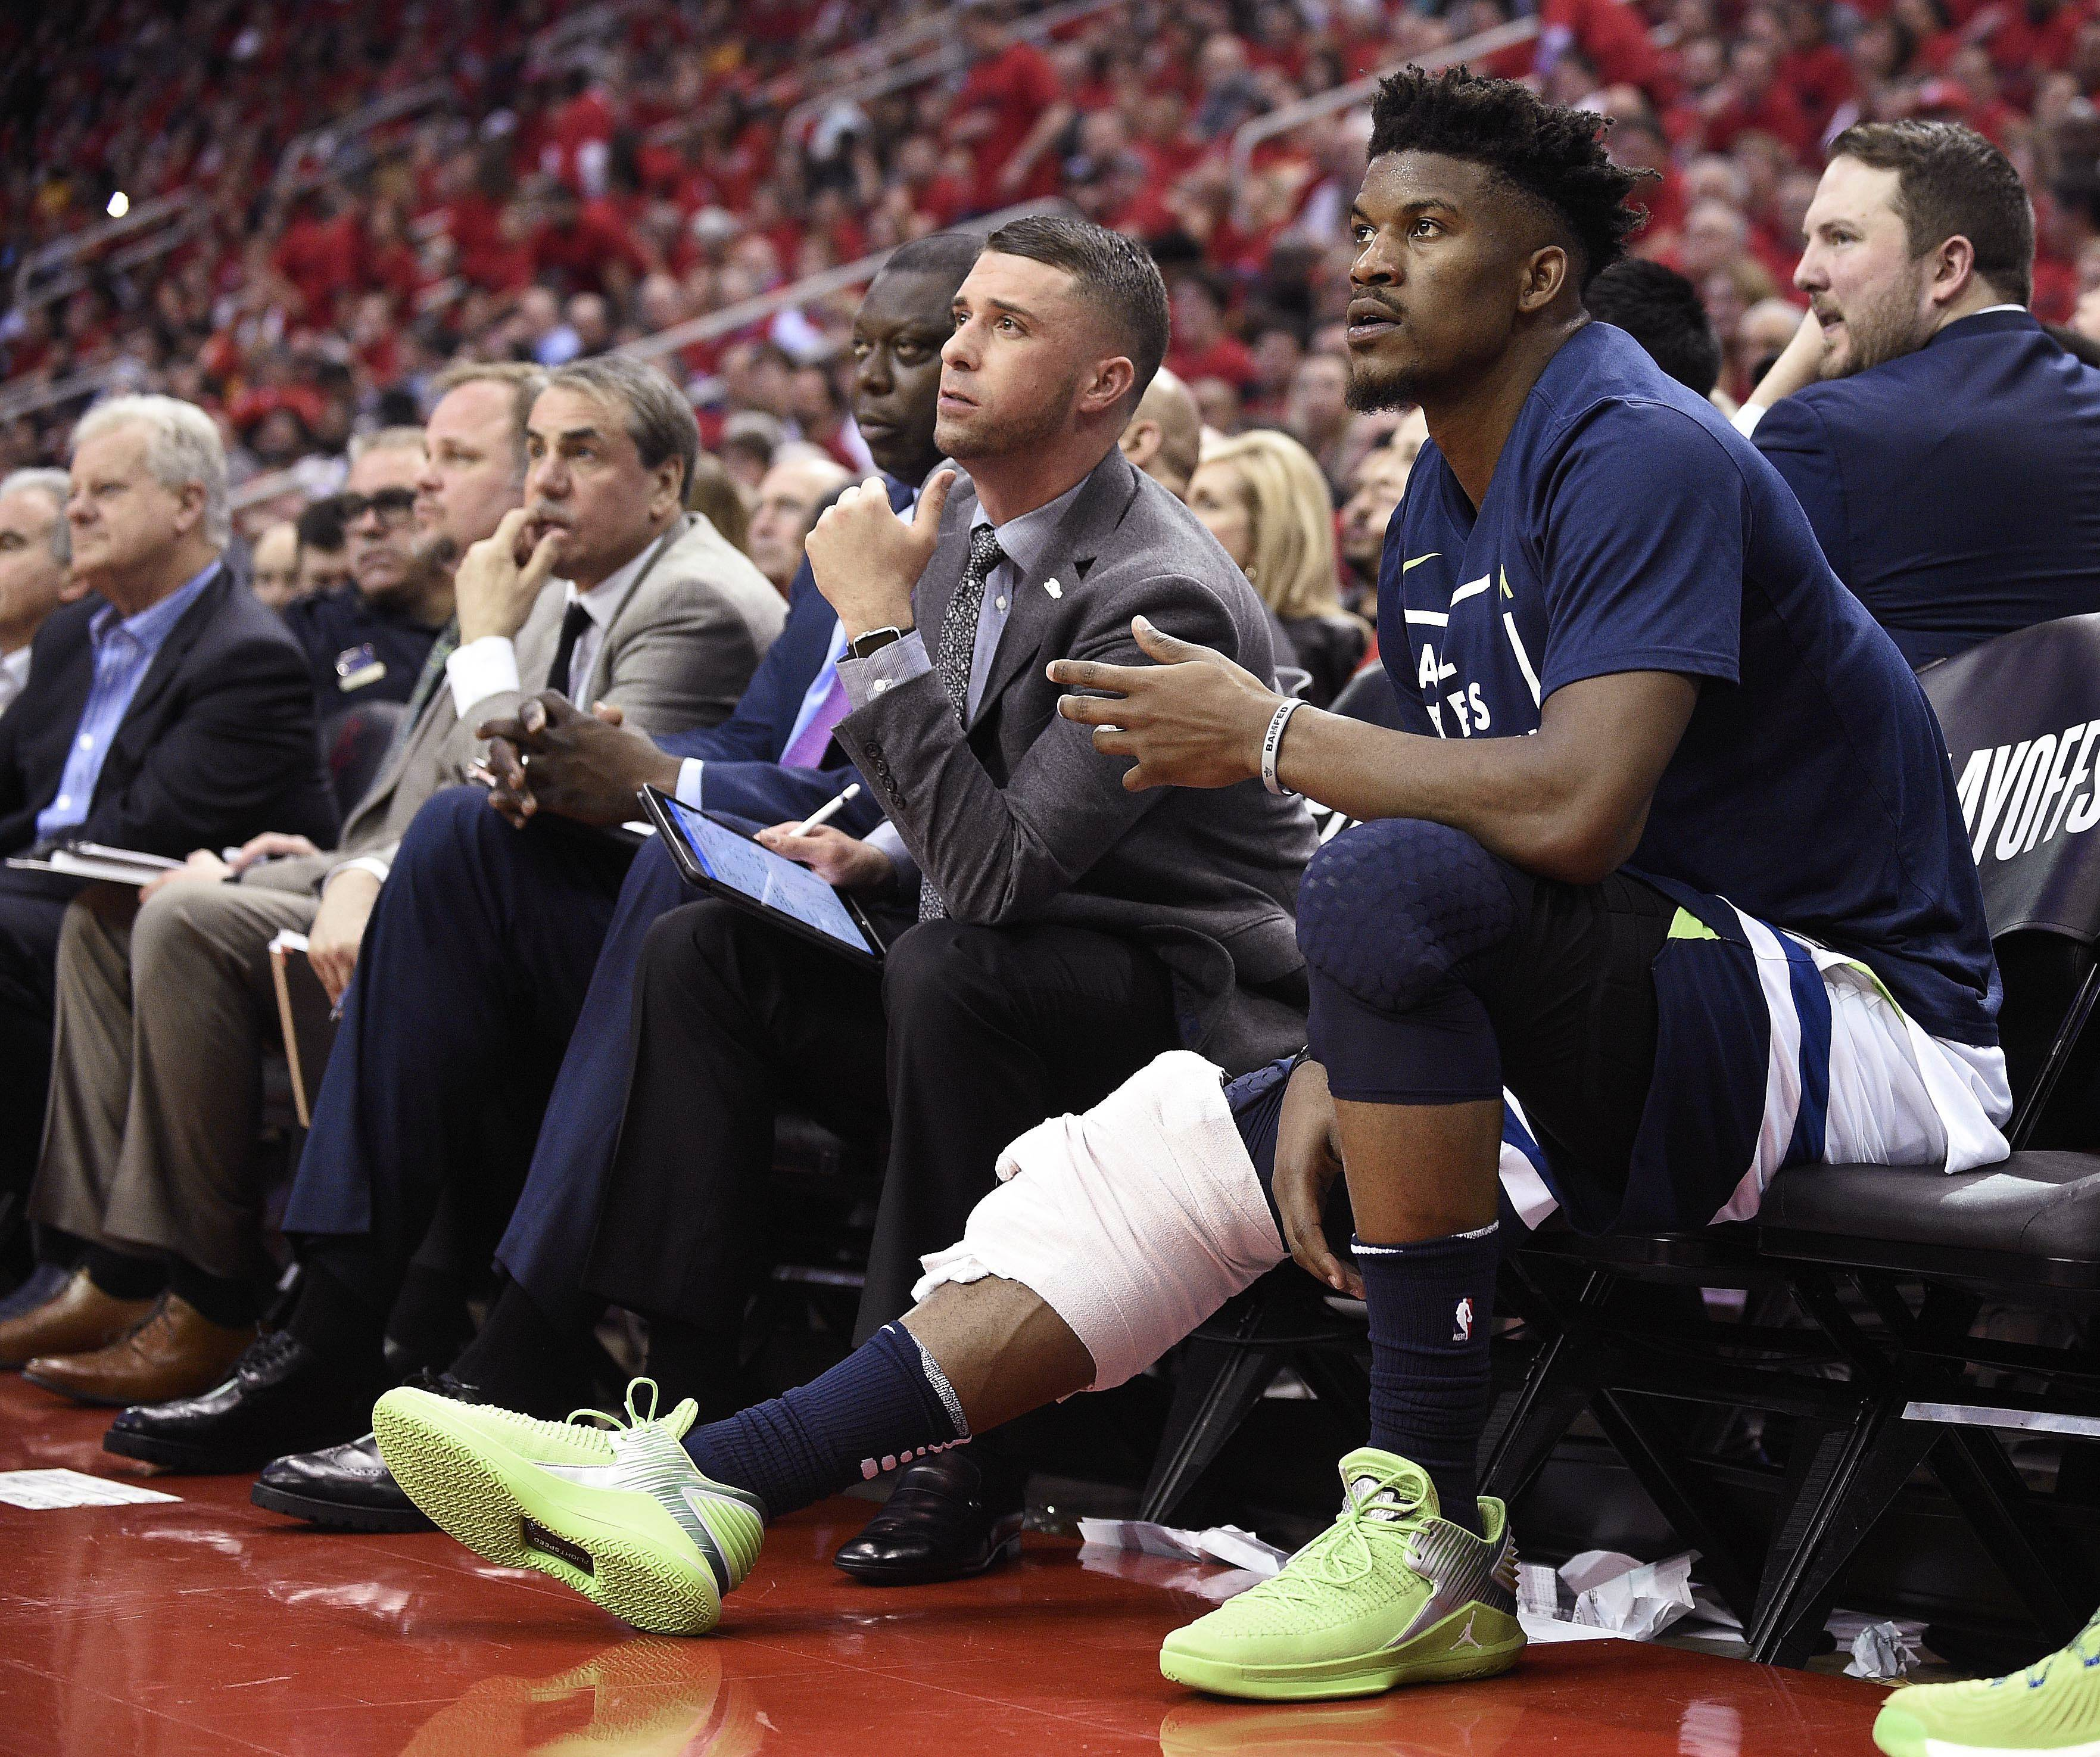 In this April 25, 2018, file photo, Minnesota Timberwolves guard Jimmy Butler, right, watches from the bench during the second half in Game 5 of the team's first-round NBA basketball playoff series against the Houston Rockets, in Houston. With Butler's status still unresolved, coach Tom Thibodeau and the Timberwolves head toward the season coming off the franchise's first playoff appearance in 14 years but carrying yet a still-cloudy outlook despite the super-max contract Karl-Anthony Towns.